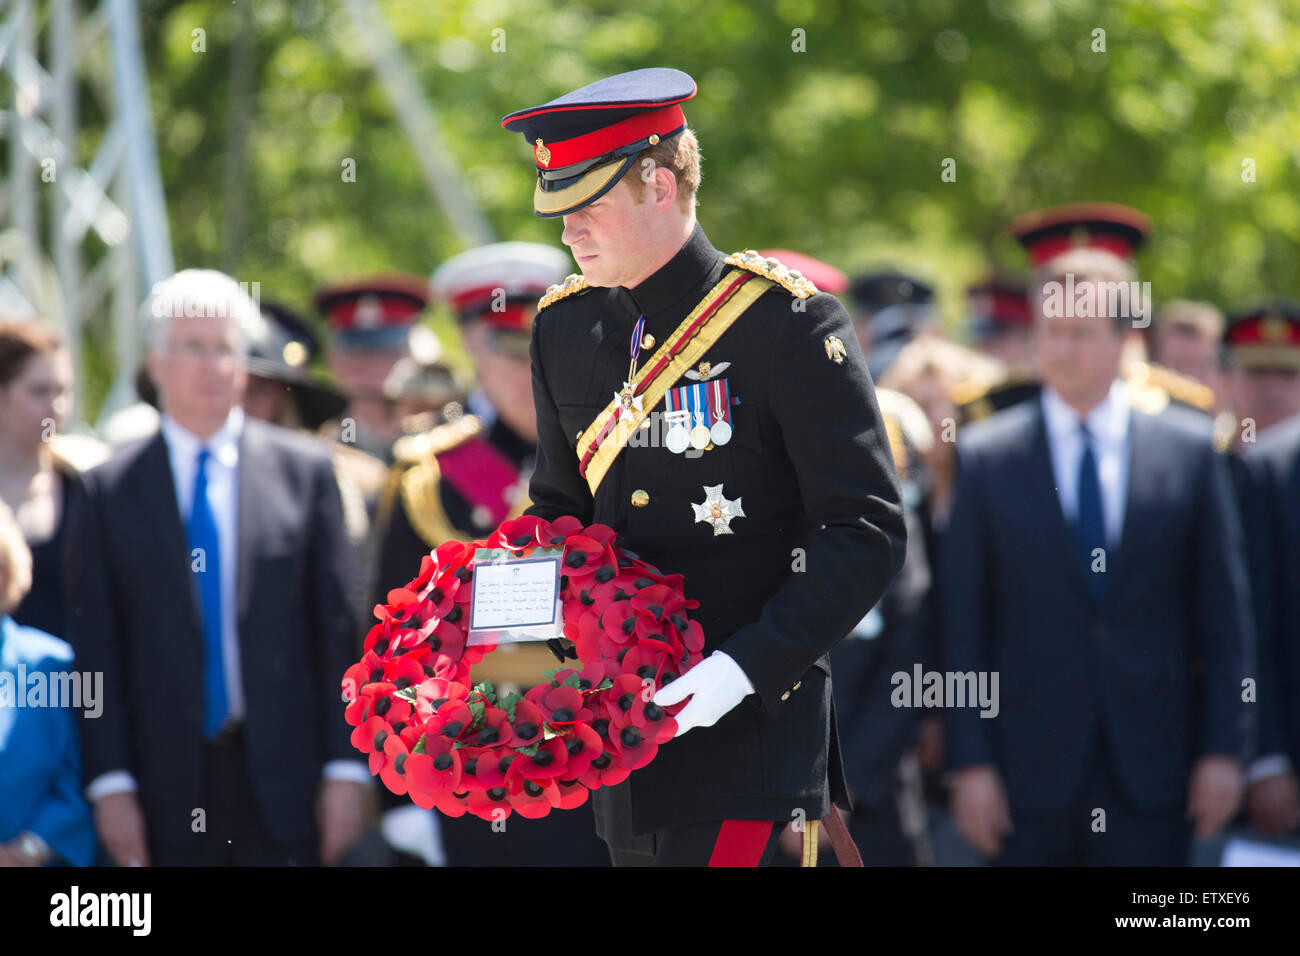 HRH Prince Harry lays a wreath during the service of rededication of the Bastion Wall at the National memorial Arboretum - Stock Image